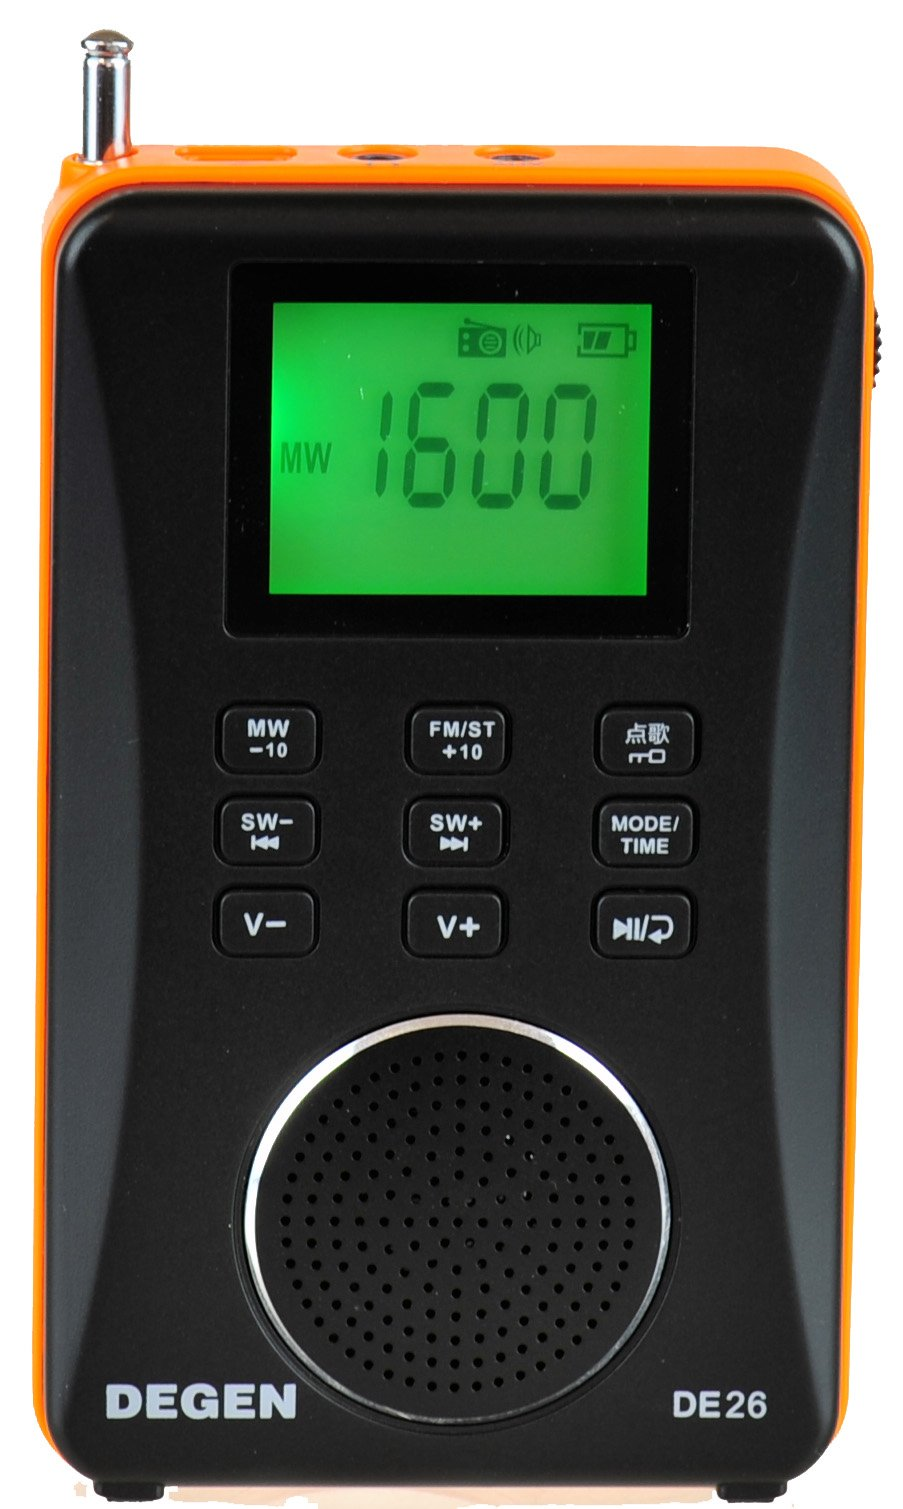 Degen DE26 3-in-1 Rechargeable AM/FM Shortwave Radio, Portable Speaker & MP3 Player with Built-in Micro SD/TF Card Reader